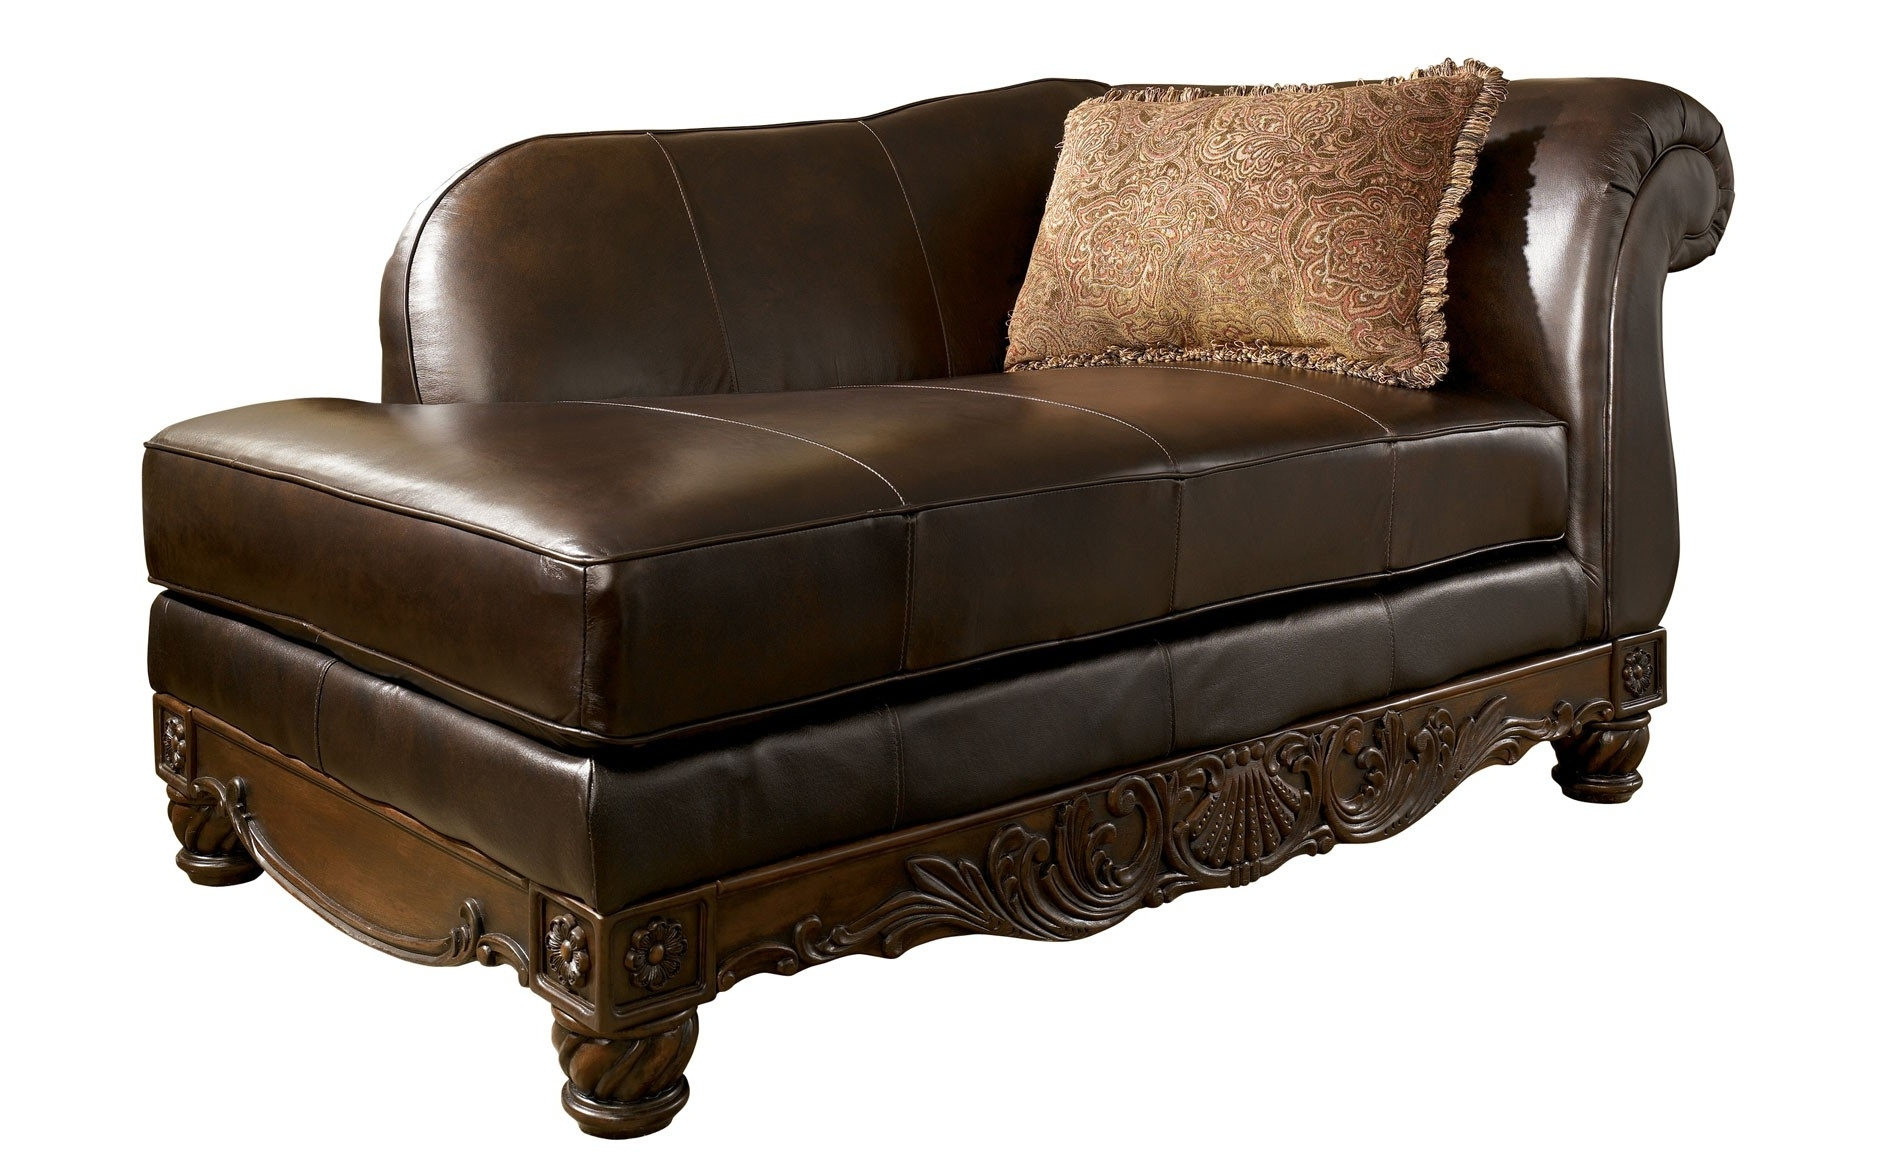 Most Current Rustic Chocolate Leather Chaise Lounge Chair With Single Arm And Regarding Brown Leather Chaises (View 3 of 15)